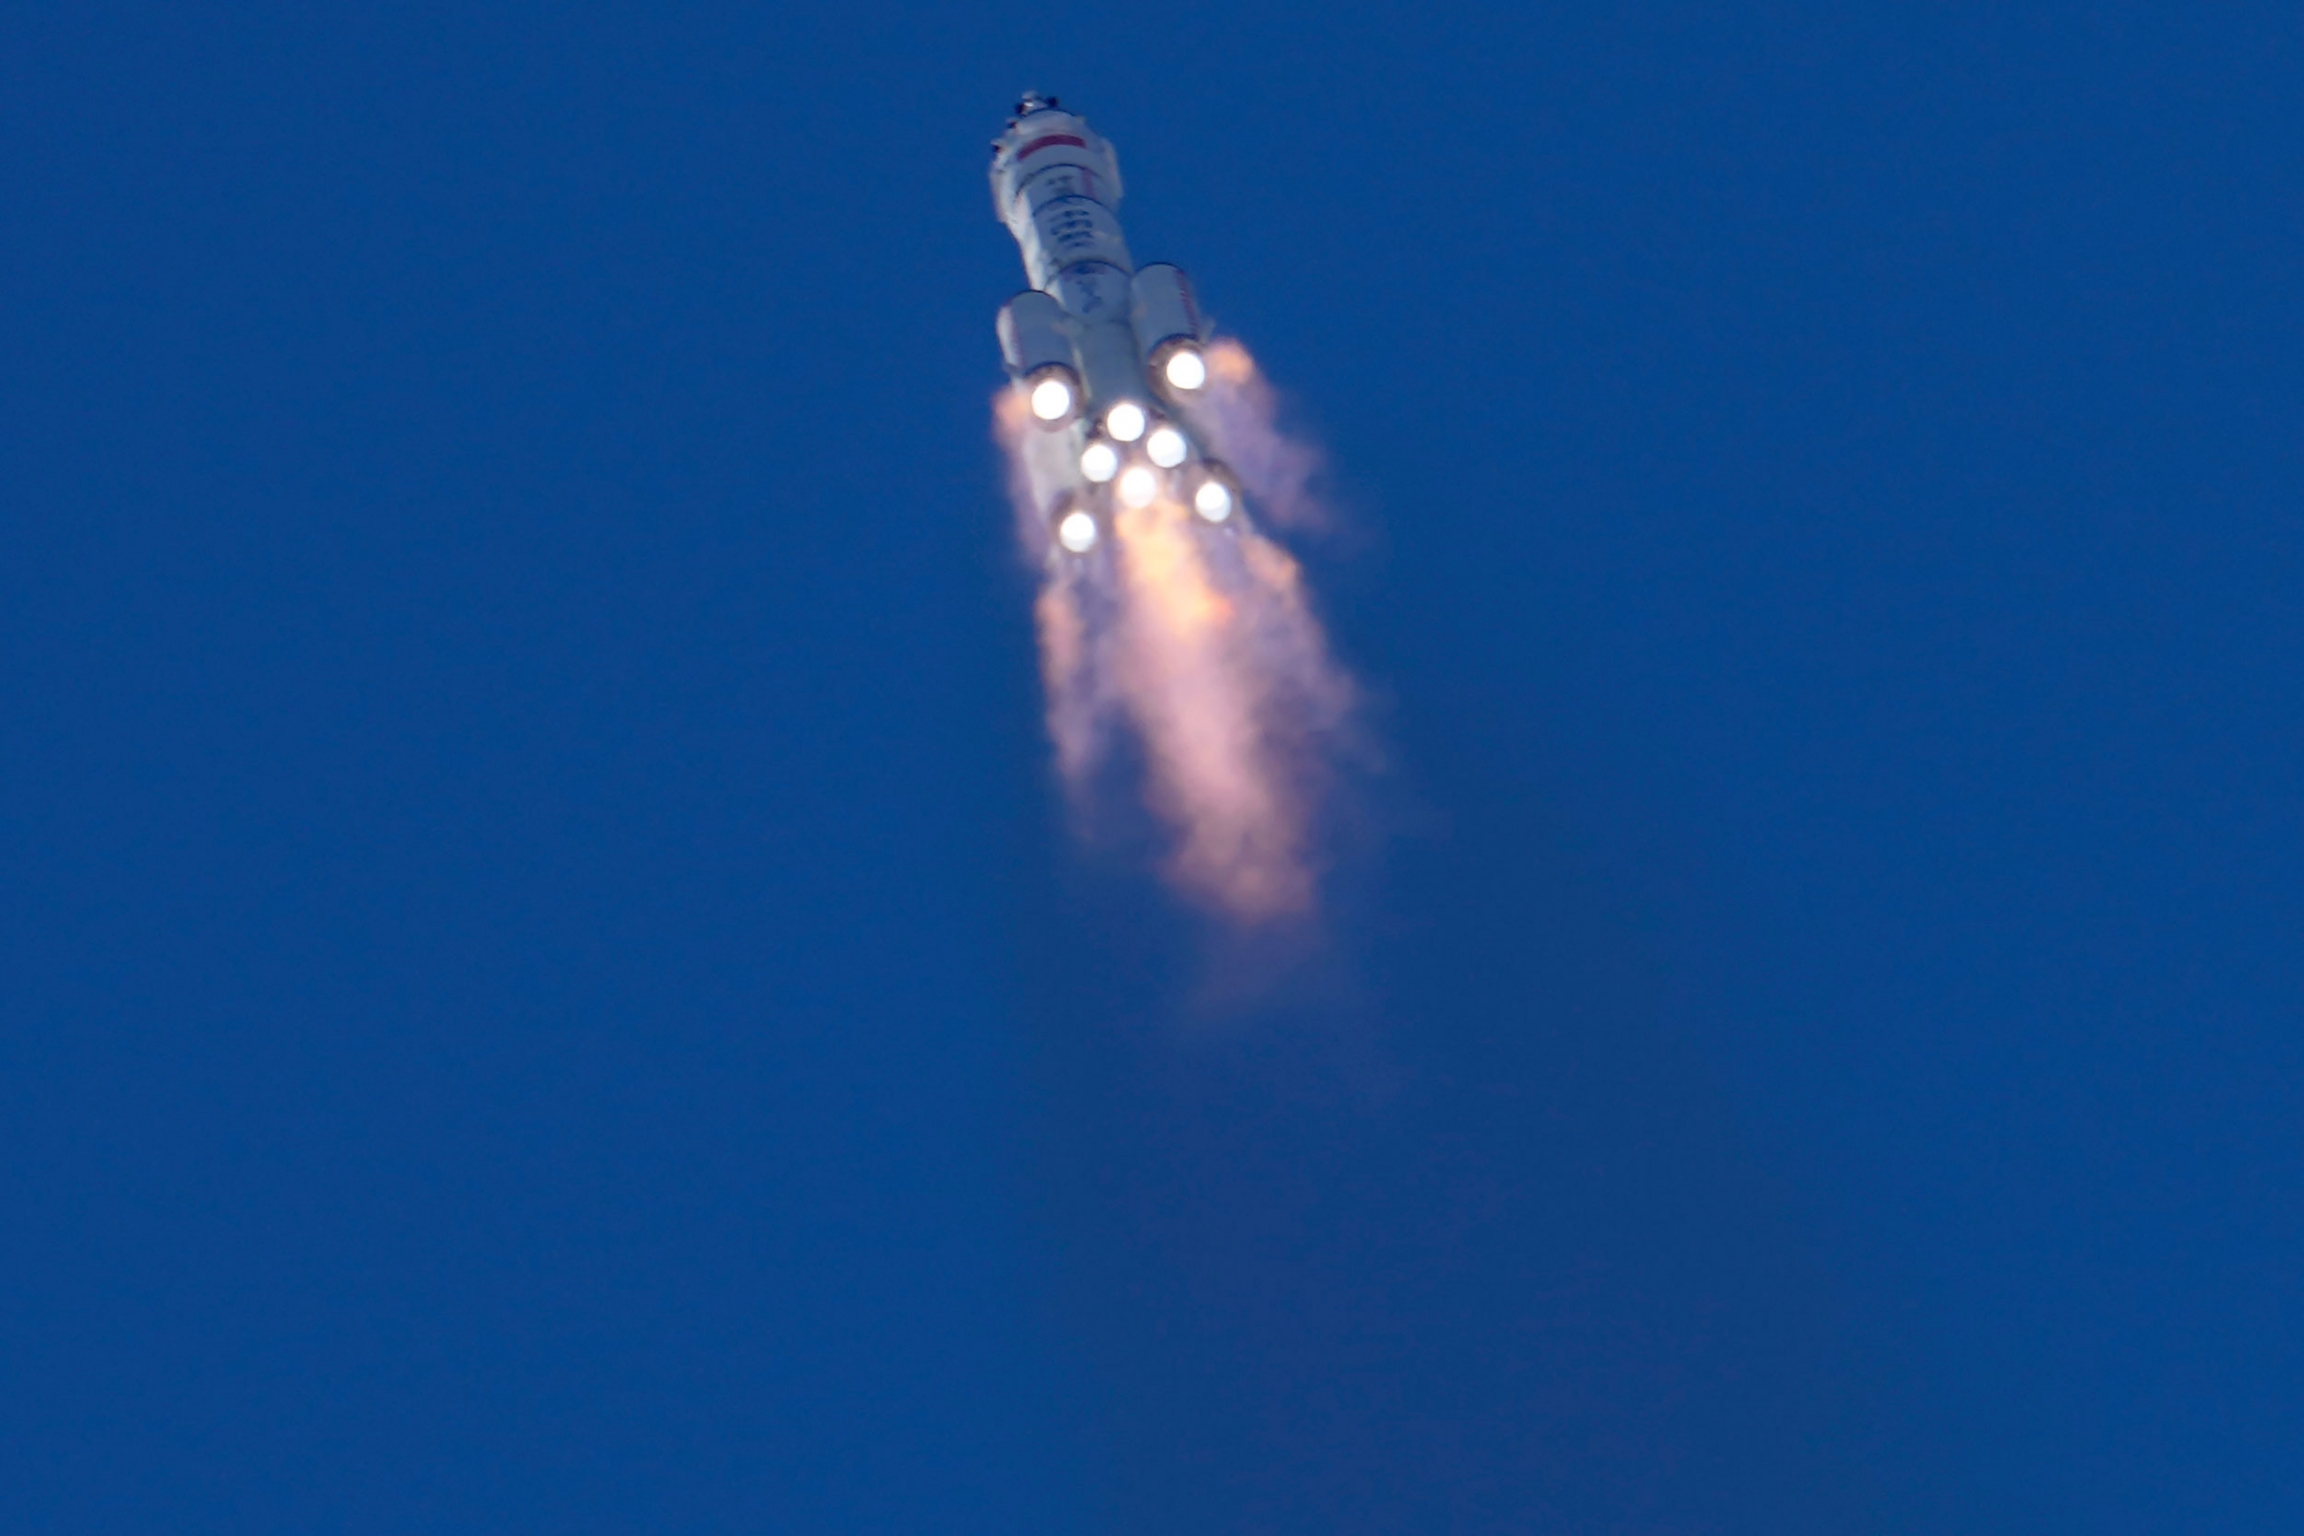 The firey bottom of eight rockets are shown from below lifting the Chinese spaceship into the sky.